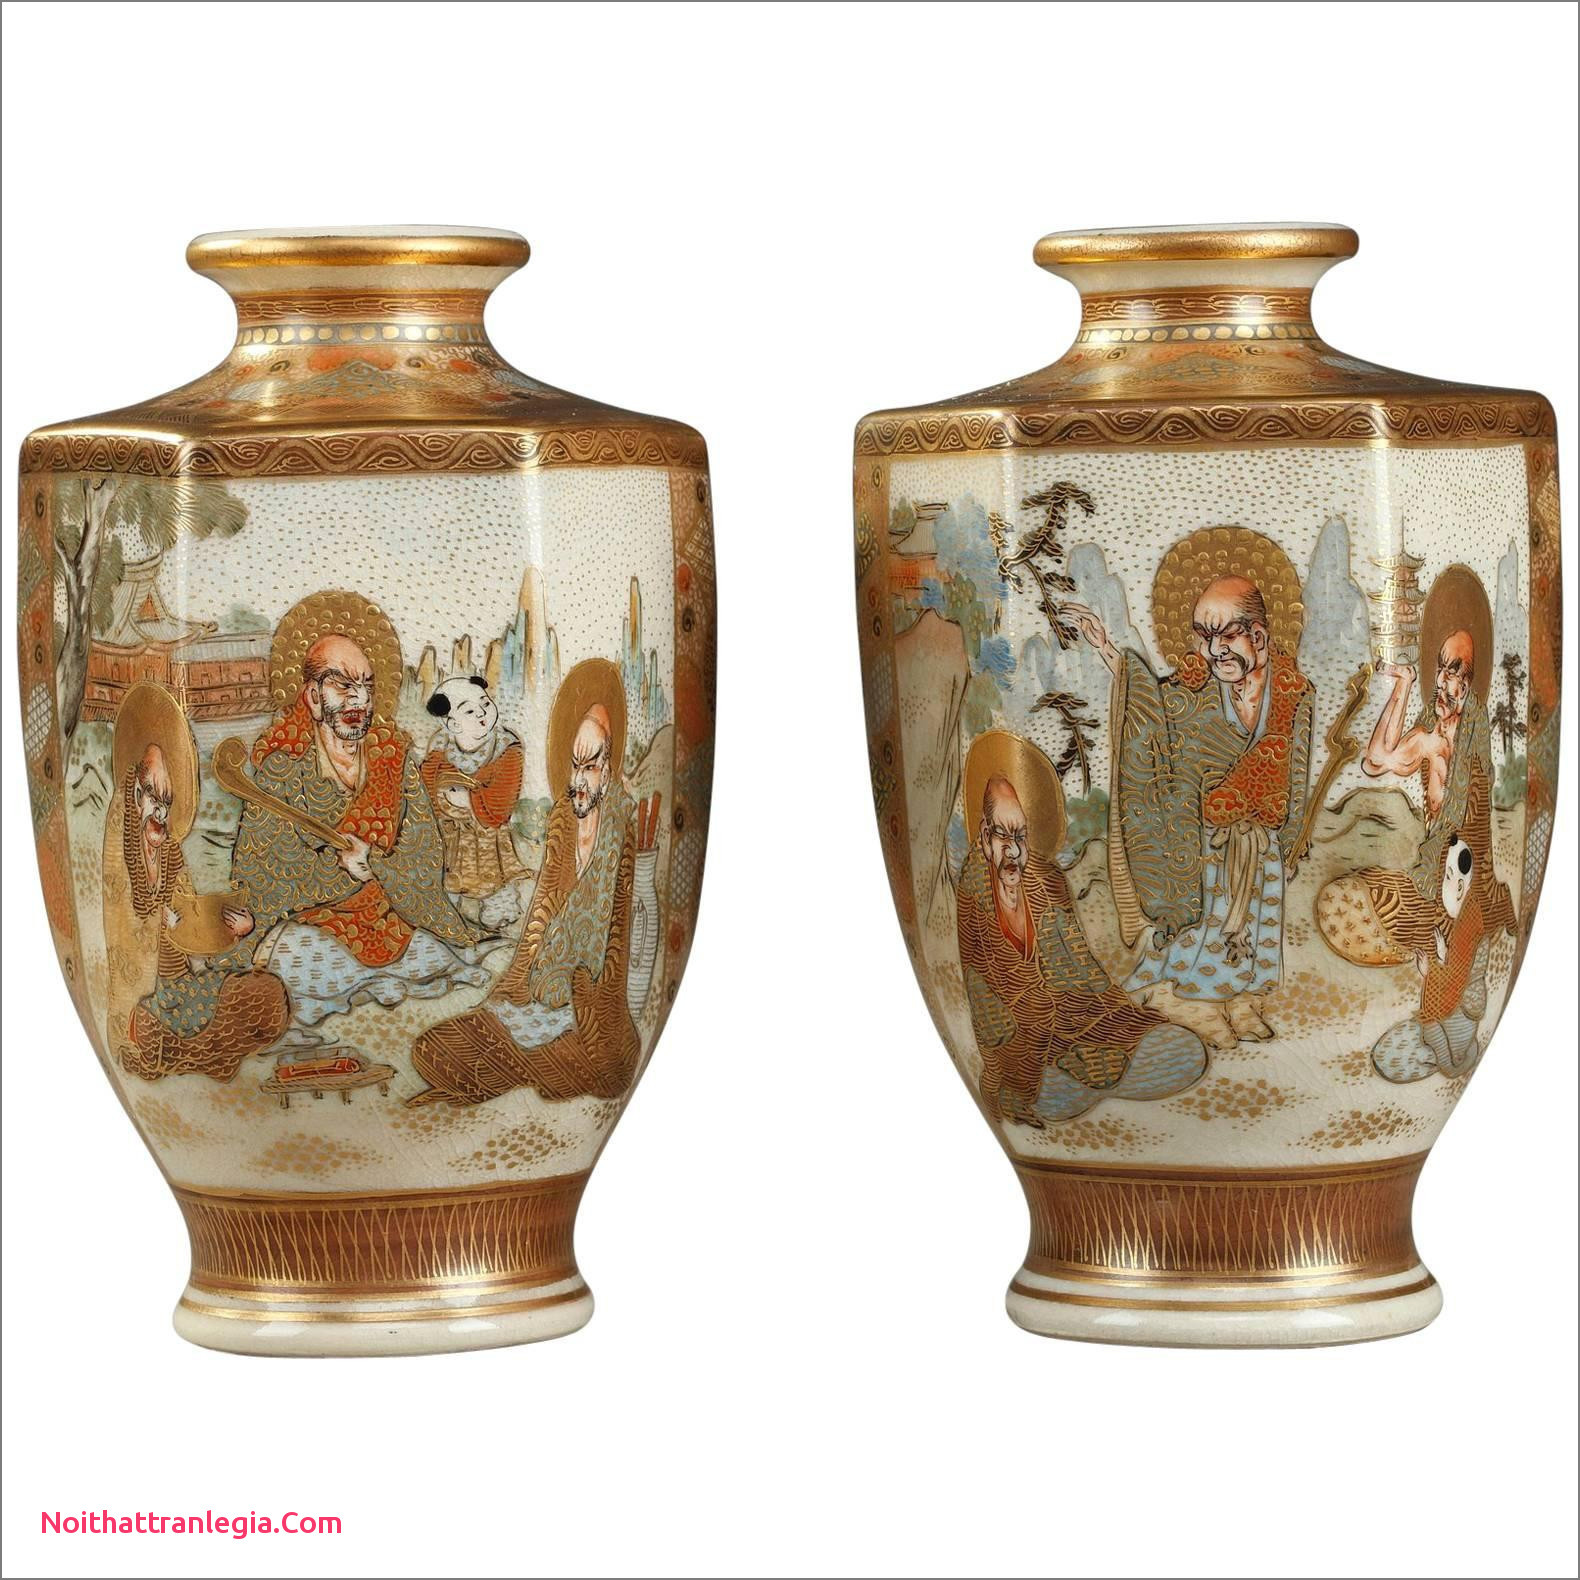 Antique Japanese Cloisonne Vases Of 20 Chinese Antique Vase Noithattranlegia Vases Design Throughout Chinese Ginger Jar Table Lamps Elegant Pair 20th Century General Porcelain Trenton Nj Usa Industrial